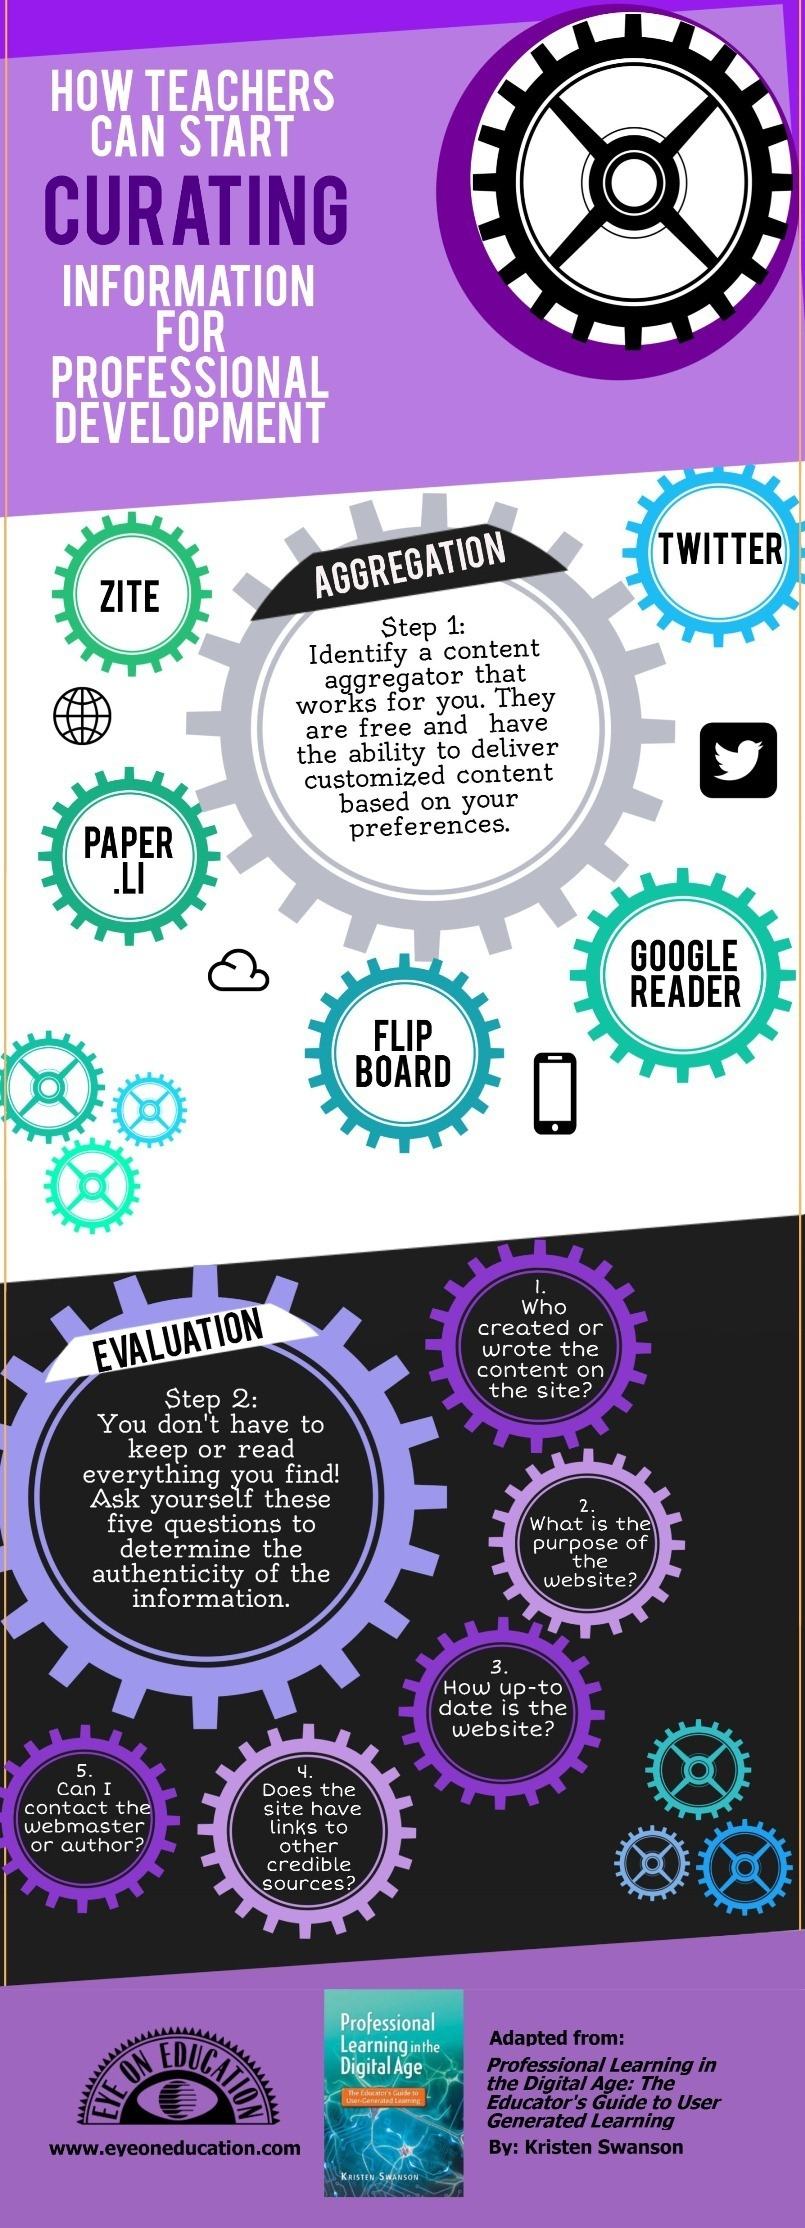 How-Teachers-Can-Start-Curating-Information-Infographic